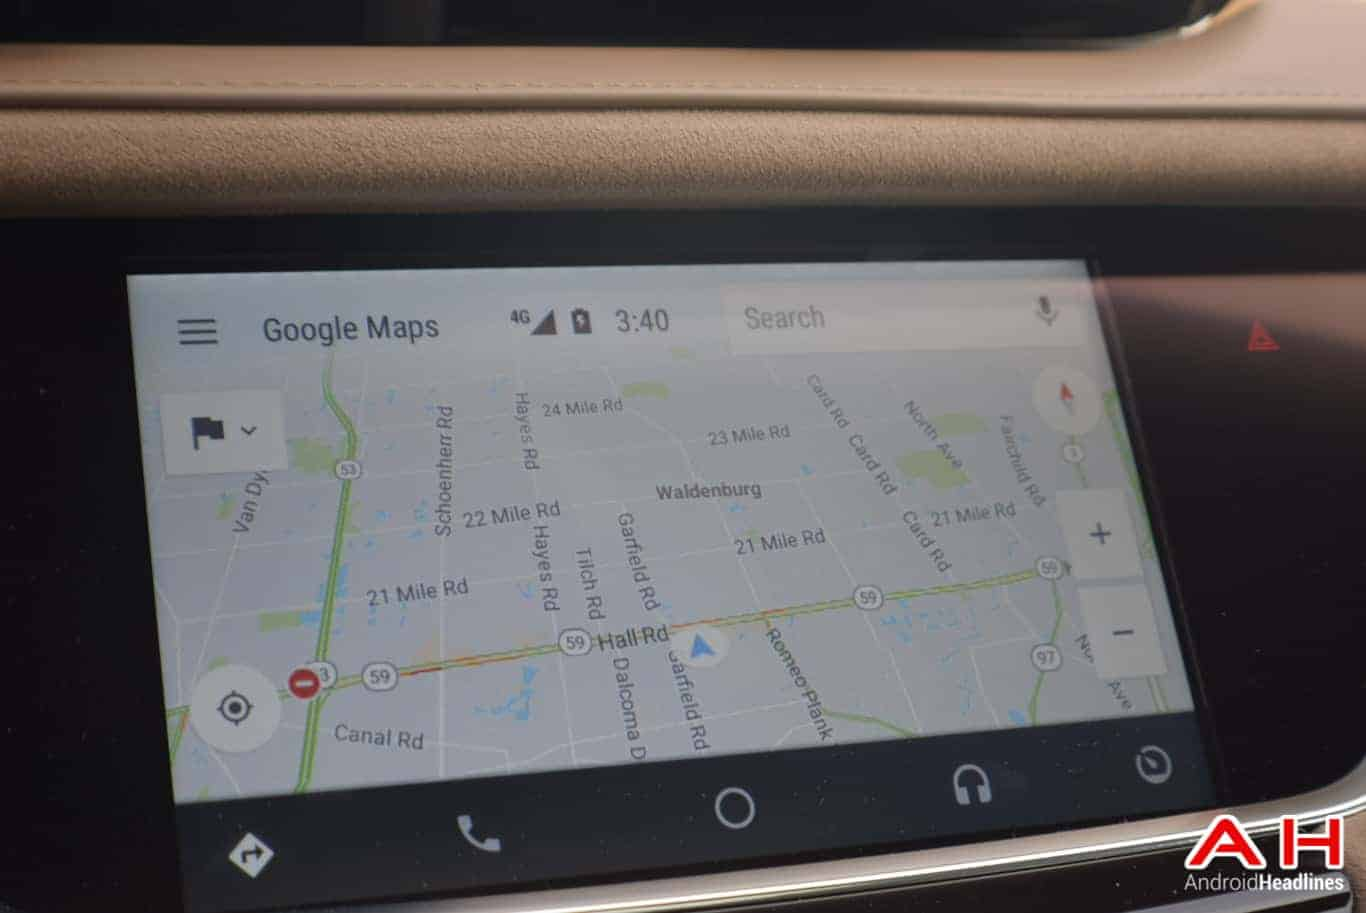 2017 Cadillac XT5 Android Auto Review AM AH 91